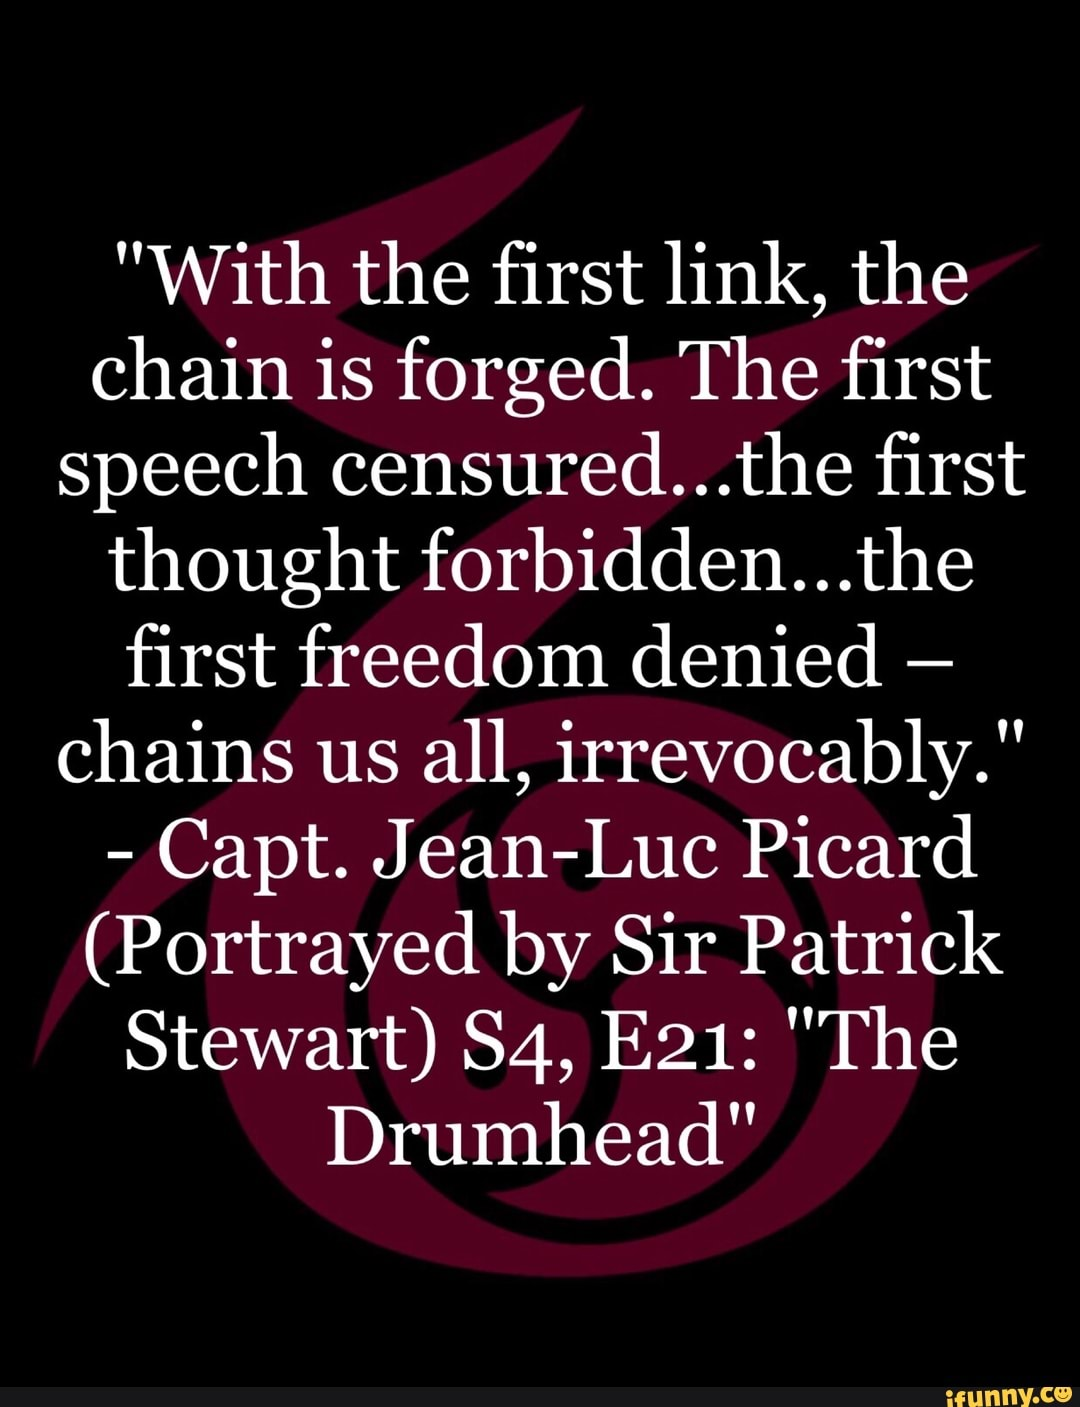 With the first link, the chain is forged  The first speech